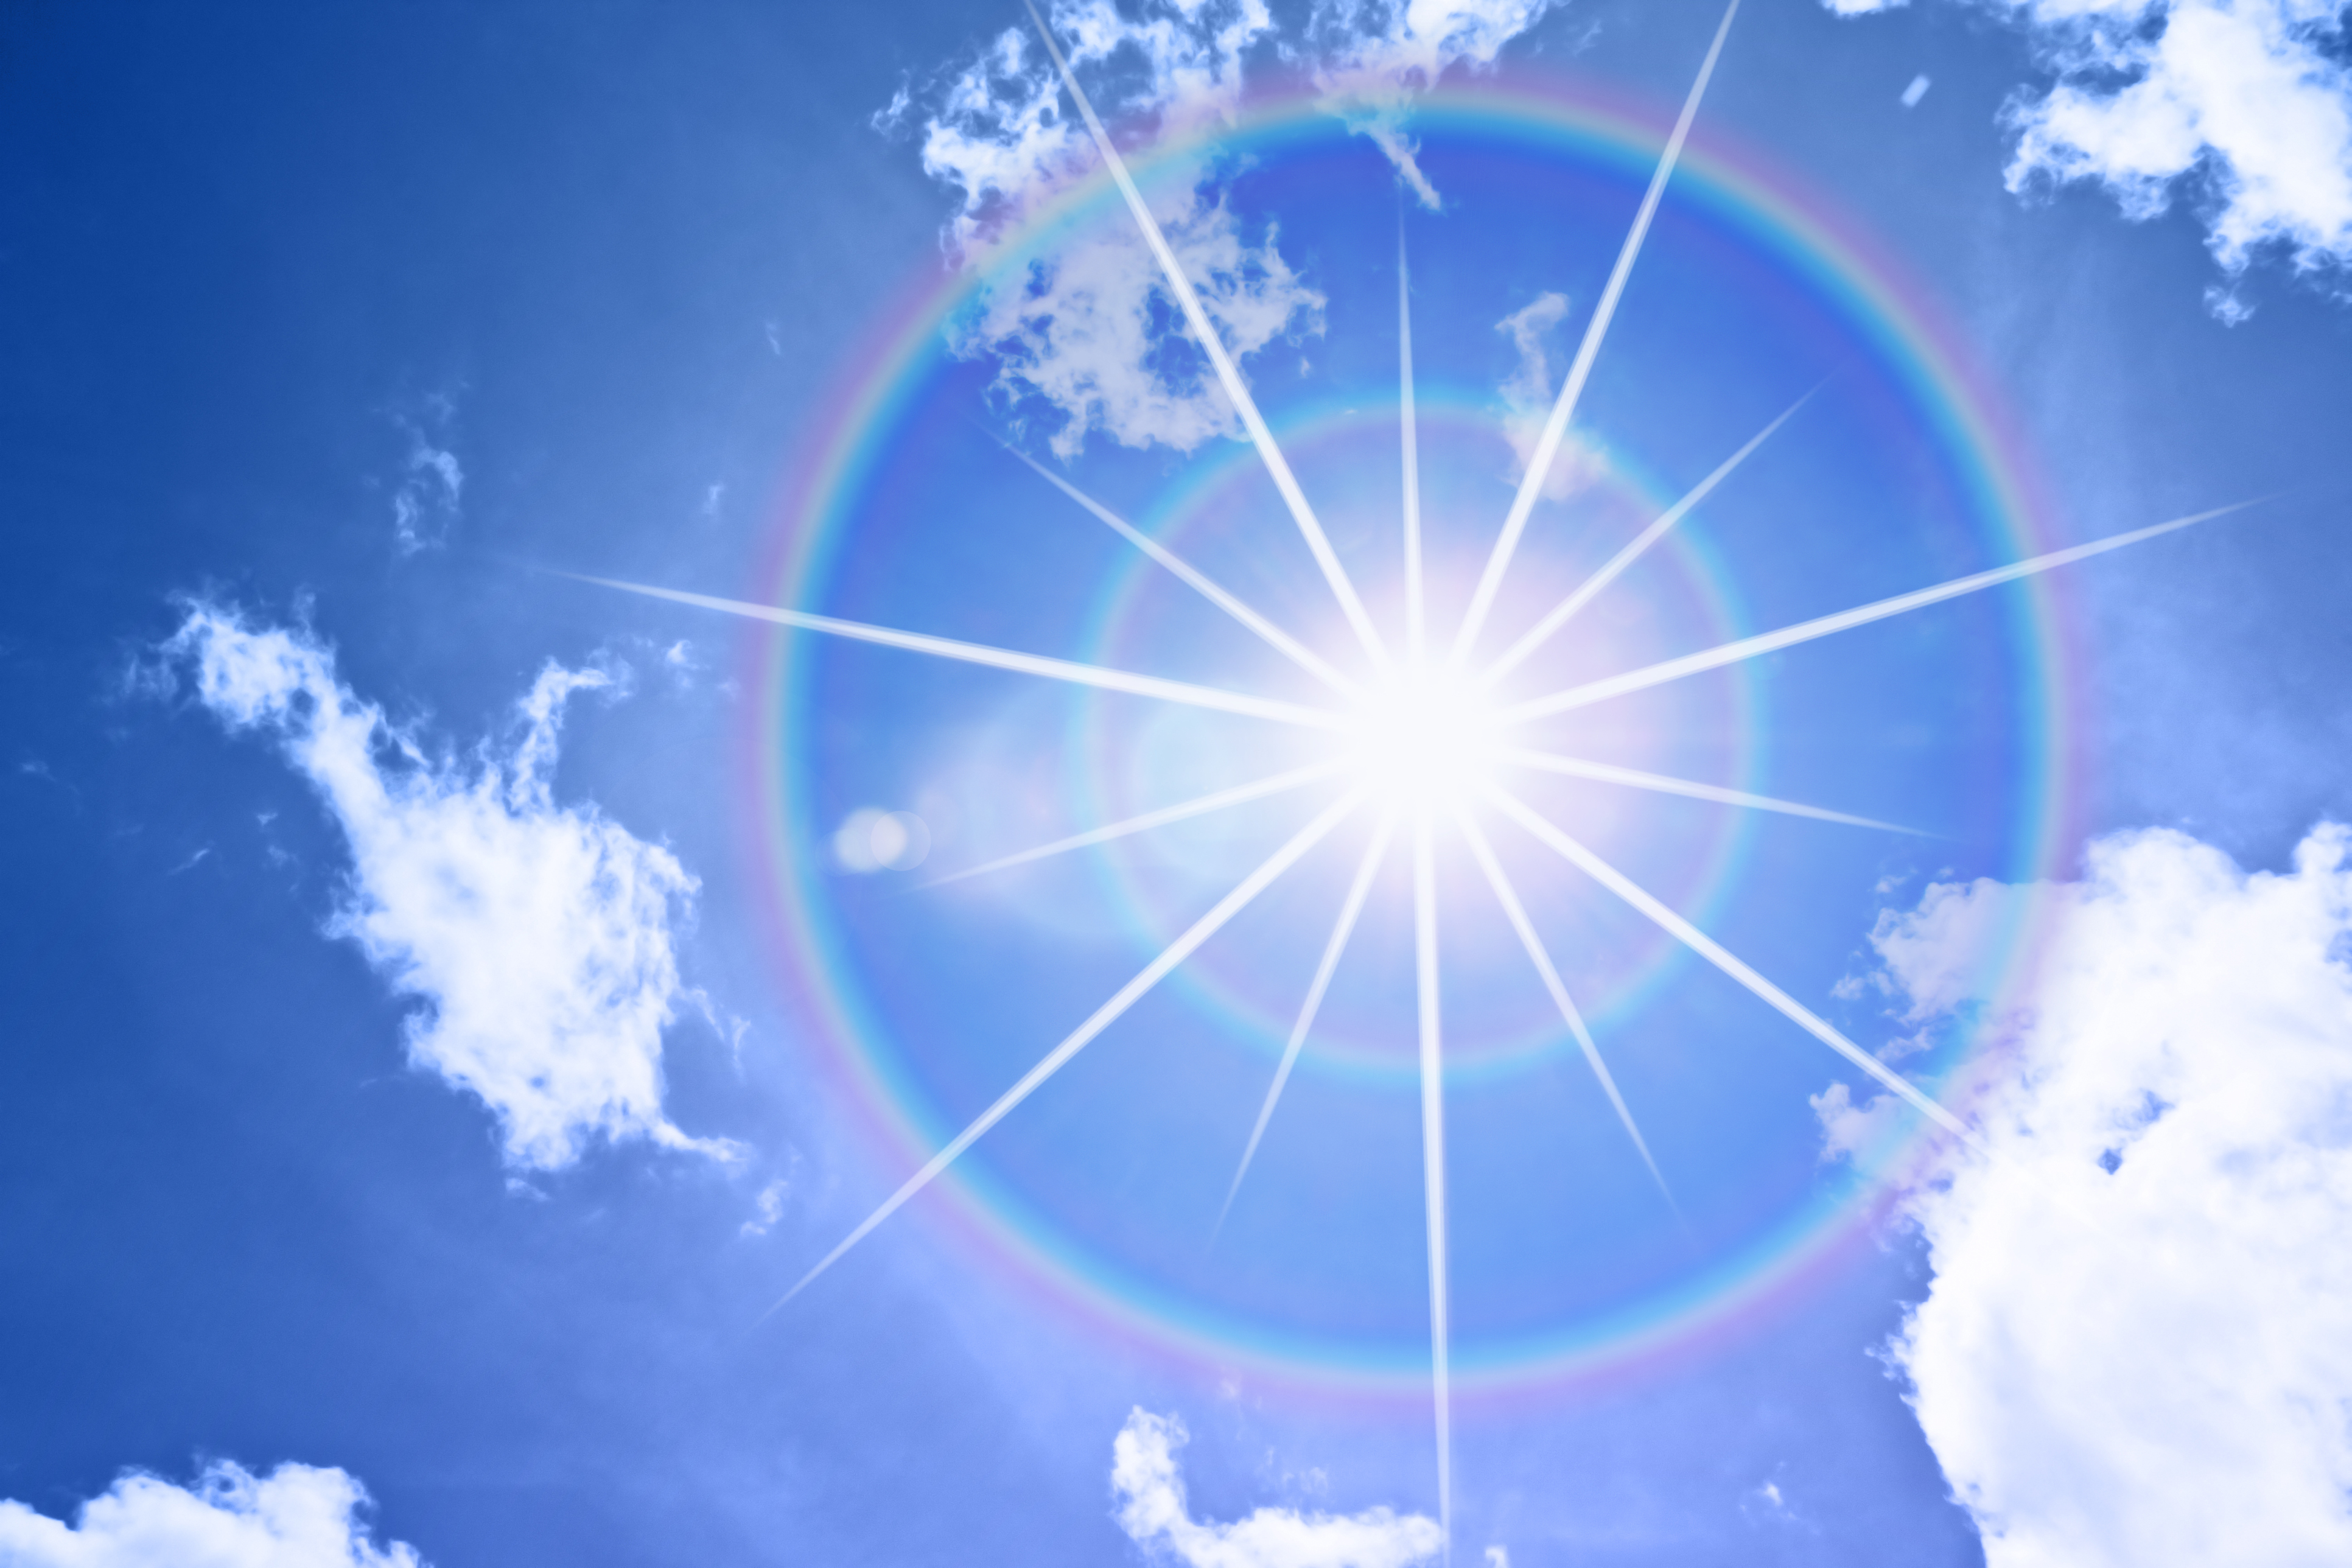 The Halo Effect: How to Build or Break It - Diane Gottsman ...